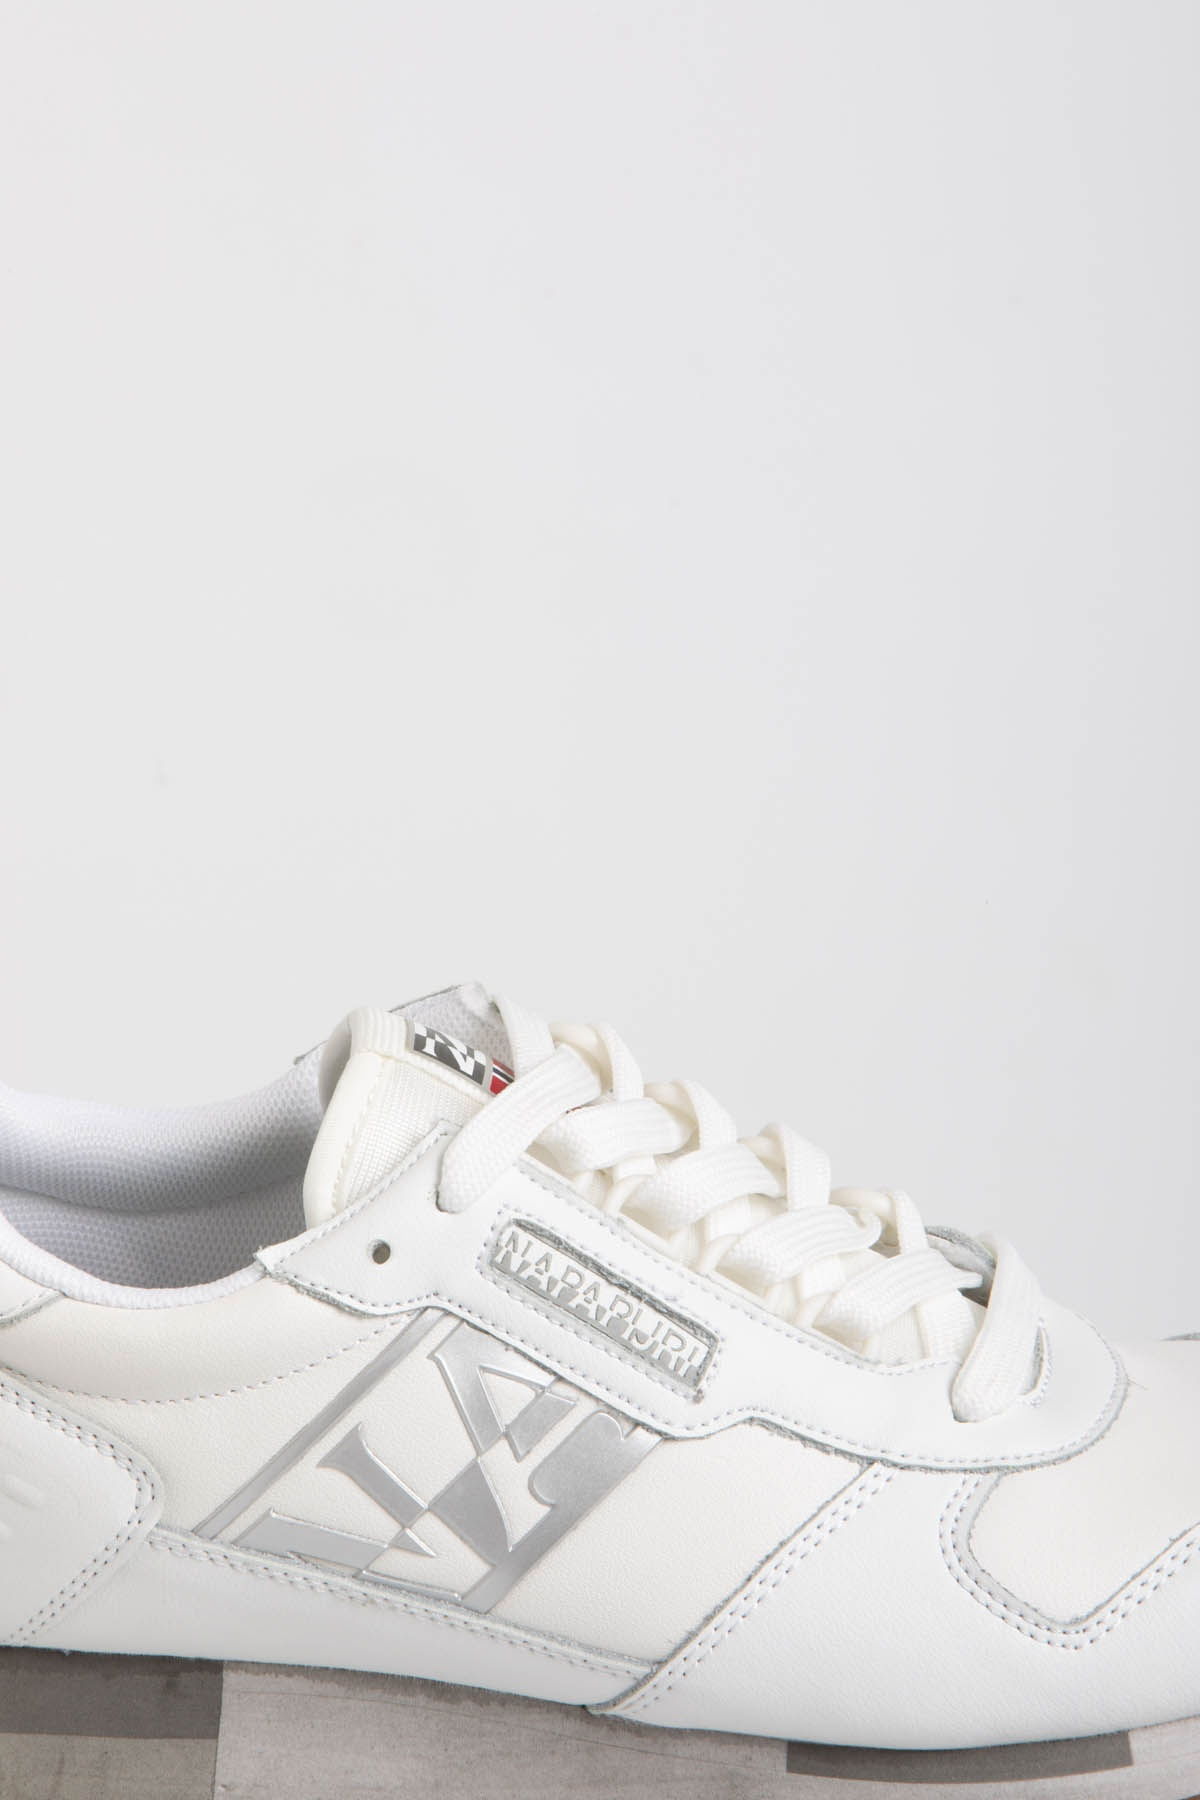 VIRTUS Sneakers for man NAPAPIJRI S/S 19